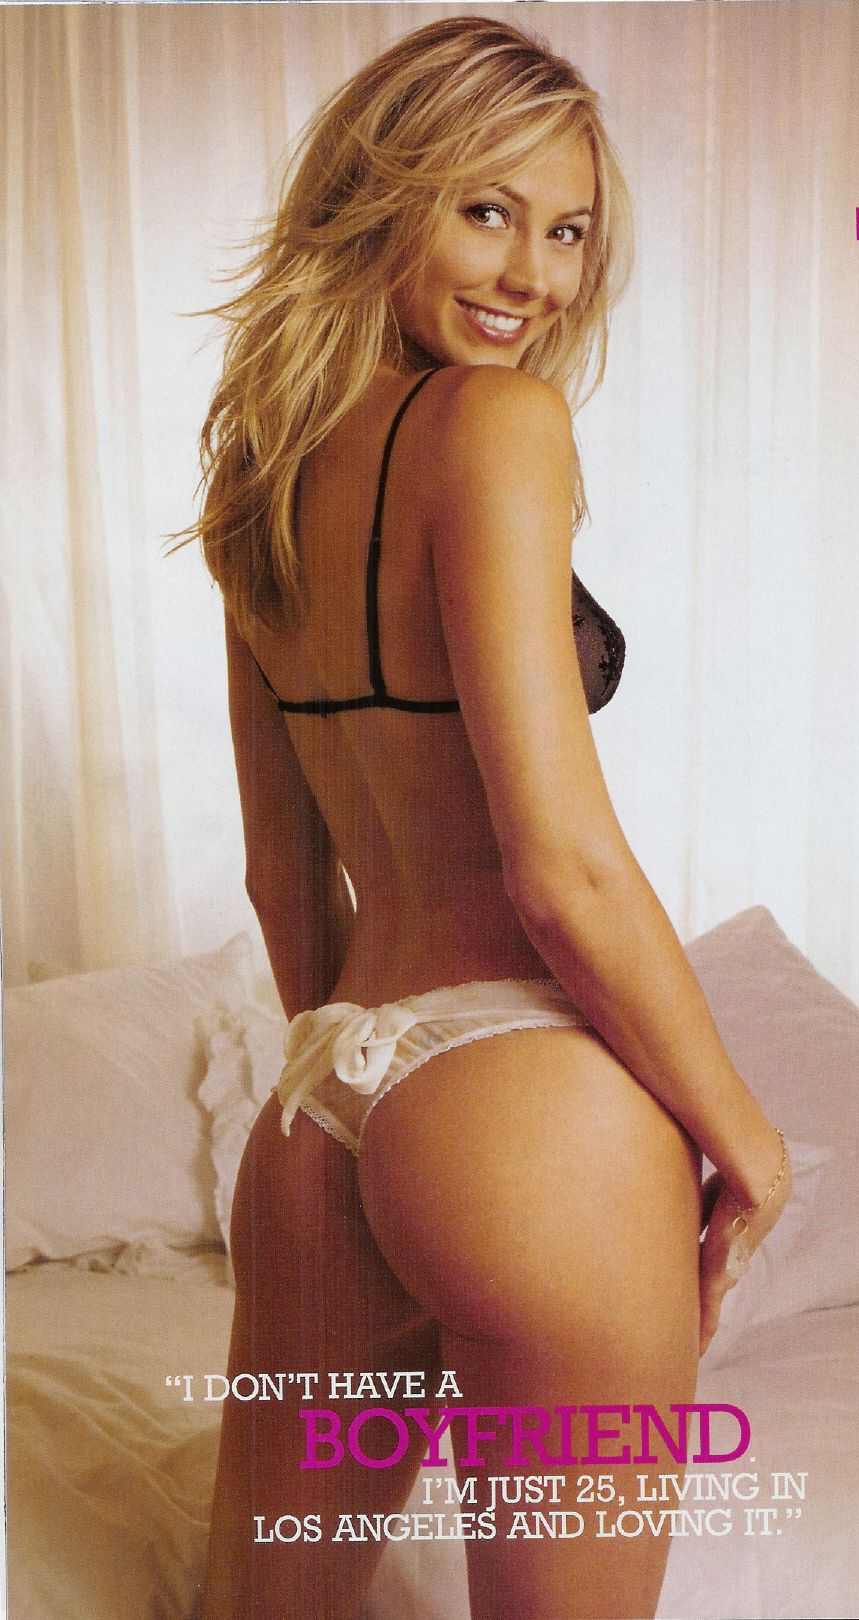 stacy keibler 2016stacy keibler wwe, stacy keibler фото, stacy keibler invasion 2001, stacy keibler wallpapers, stacy keibler wiki, stacy keibler 2017, stacy keibler theme, stacy keibler victoria, stacy keibler stuff photoshoot, stacy keibler psych, stacy keibler wcw, stacy keibler instagram, stacy keibler 2016, stacy keibler blue mountain state, stacy keibler music video, stacy keibler theme 2002, stacy keibler facebook, stacy keibler wallpaper hd, stacy keibler daughter